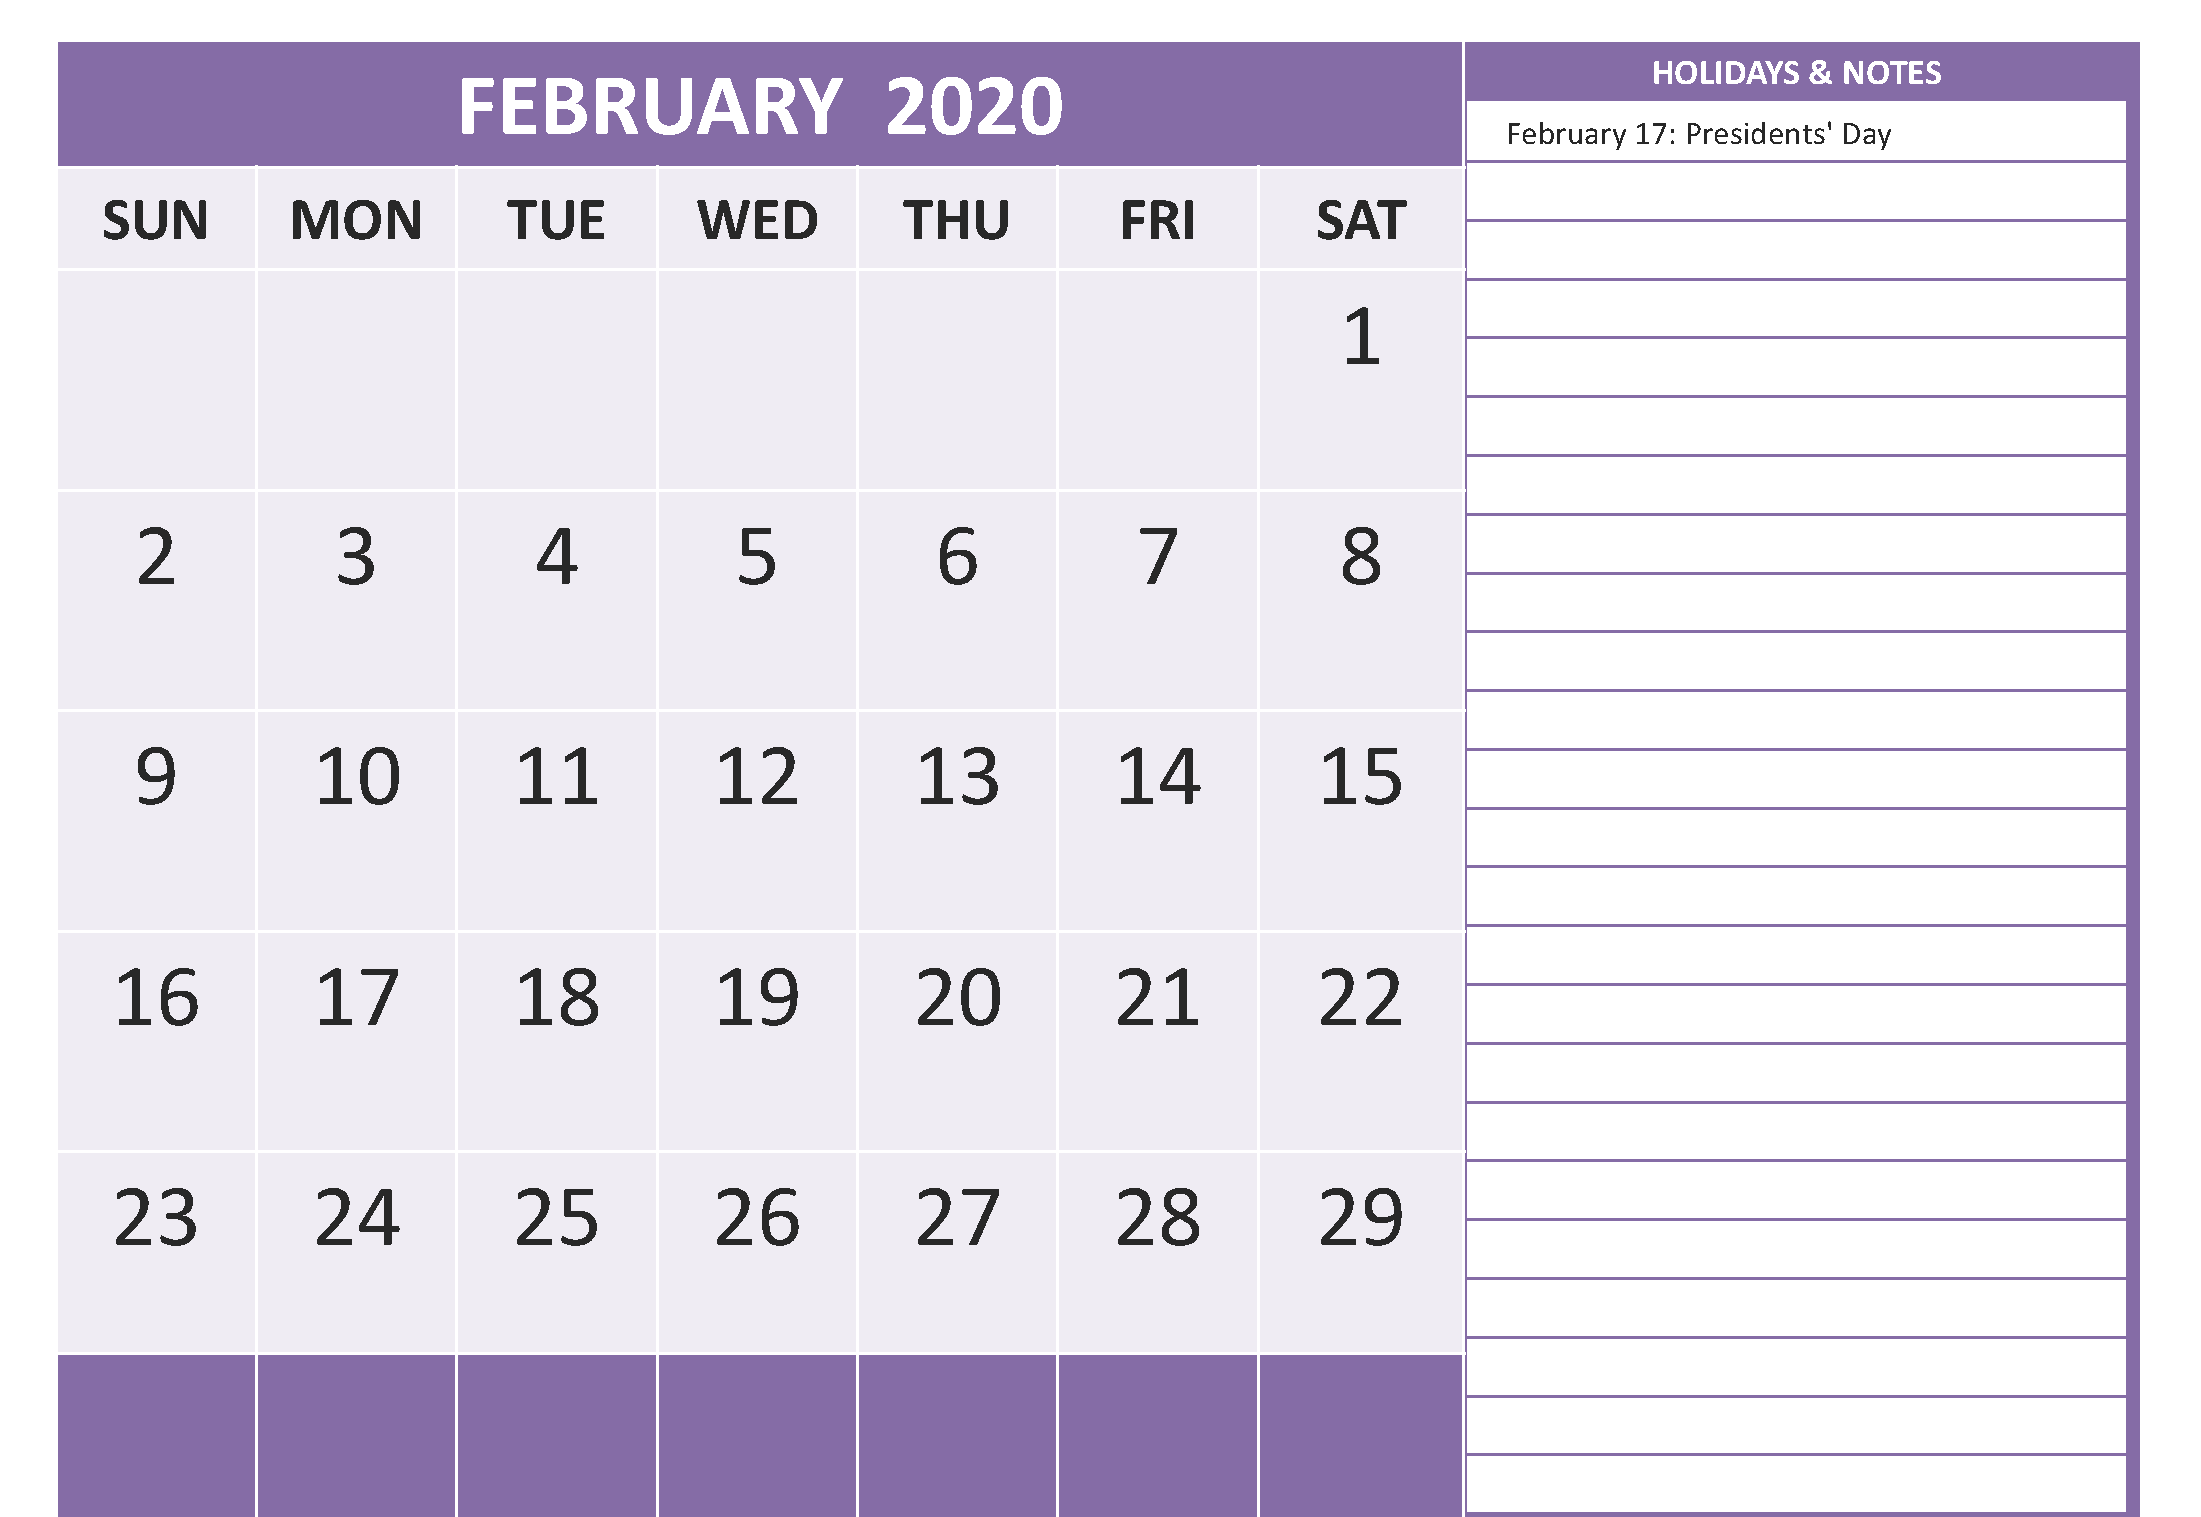 February 2020 Calendar Holidays with Notes